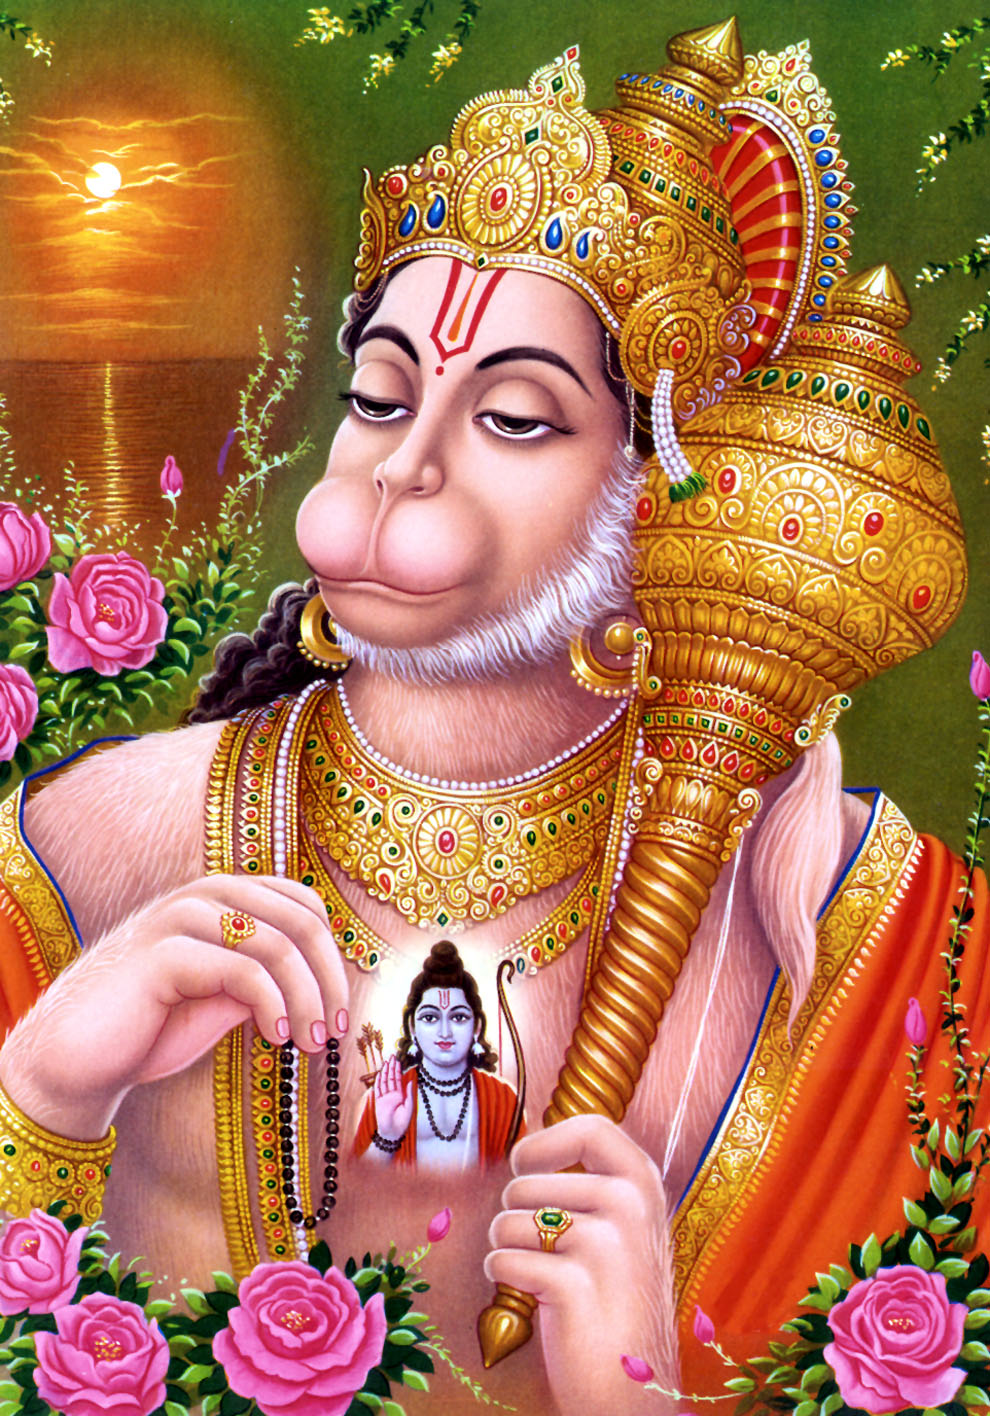 God Hanuman Ji god pictures wallpappe...